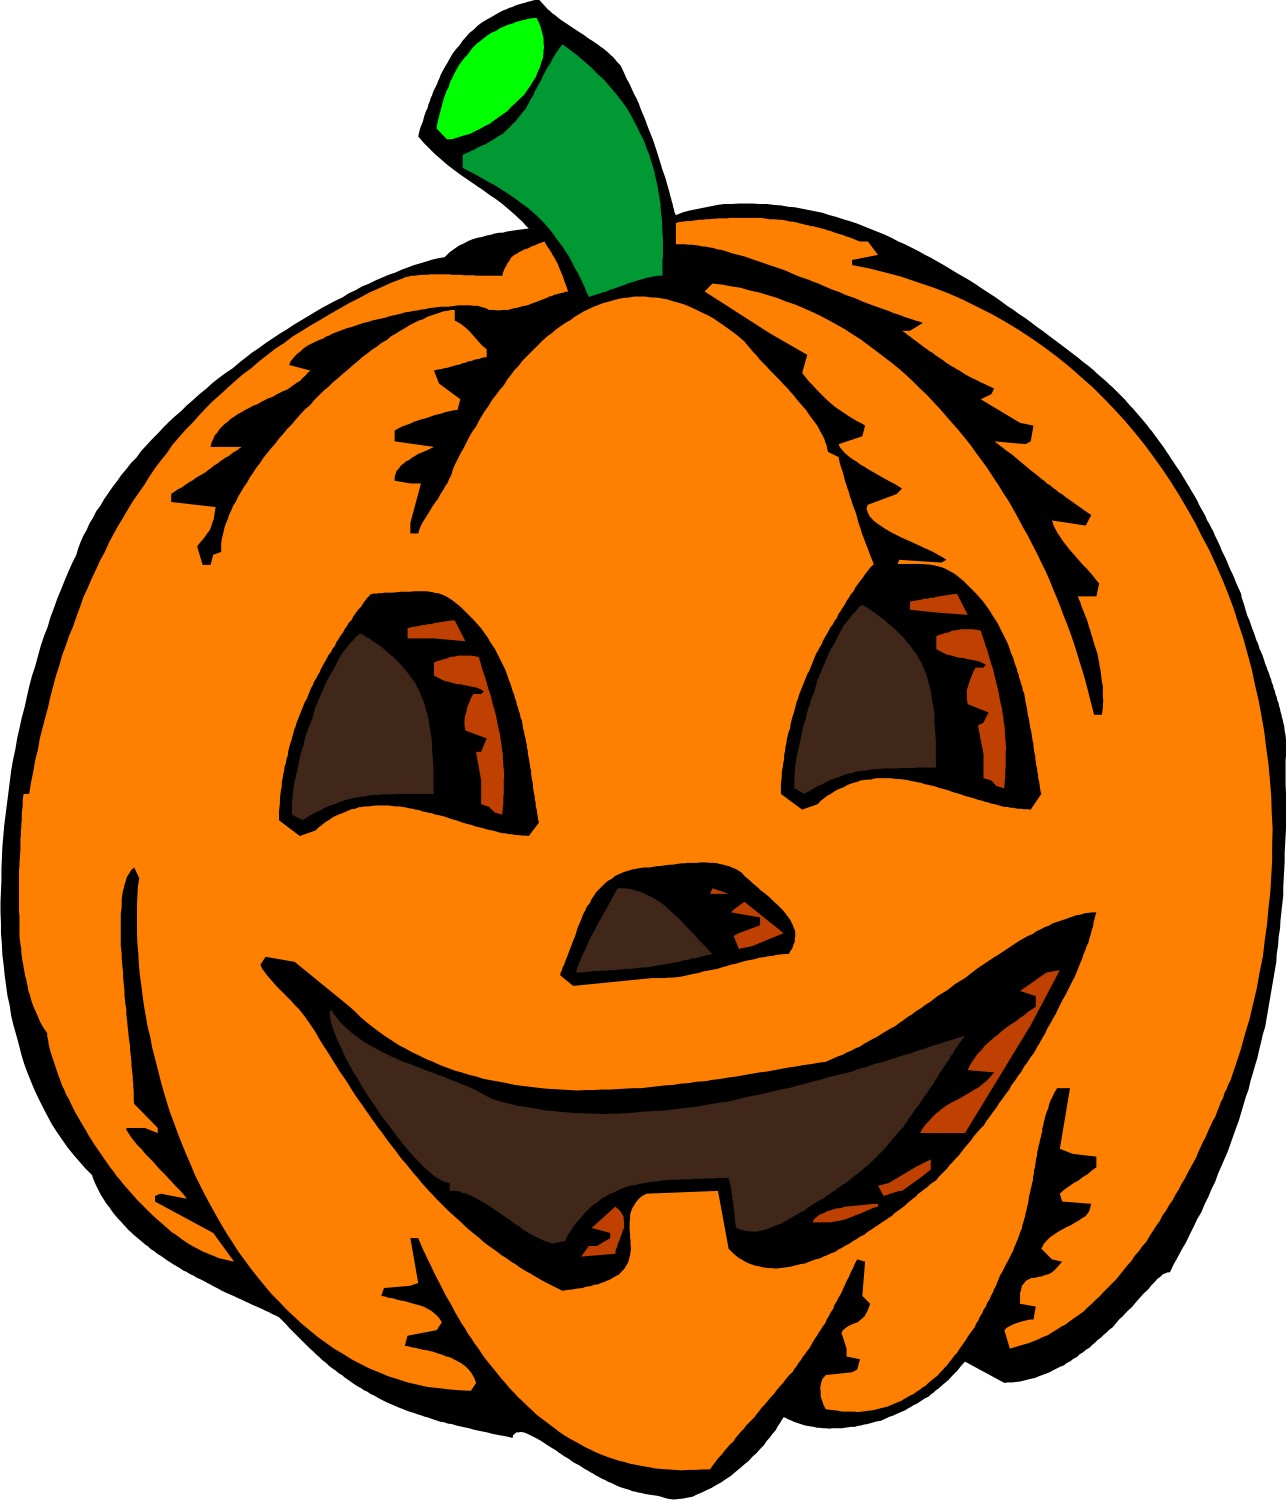 Pumpkin clipart #17, Download drawings